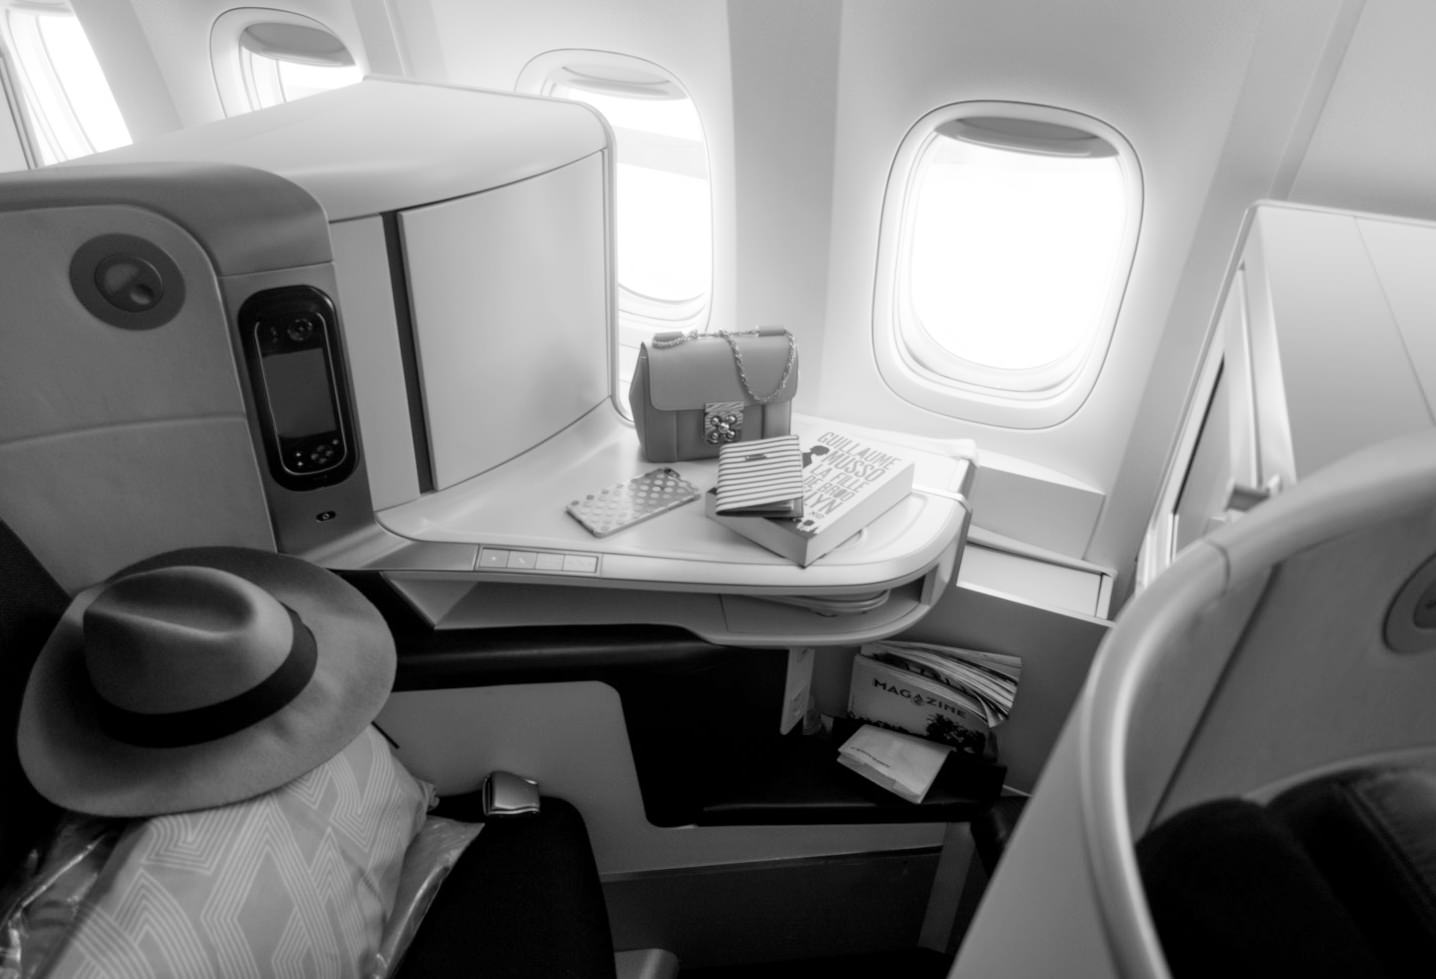 Blog-Mode-And-The-City-Lifestyle-New-York-Air-France-Jean-Imbert-17